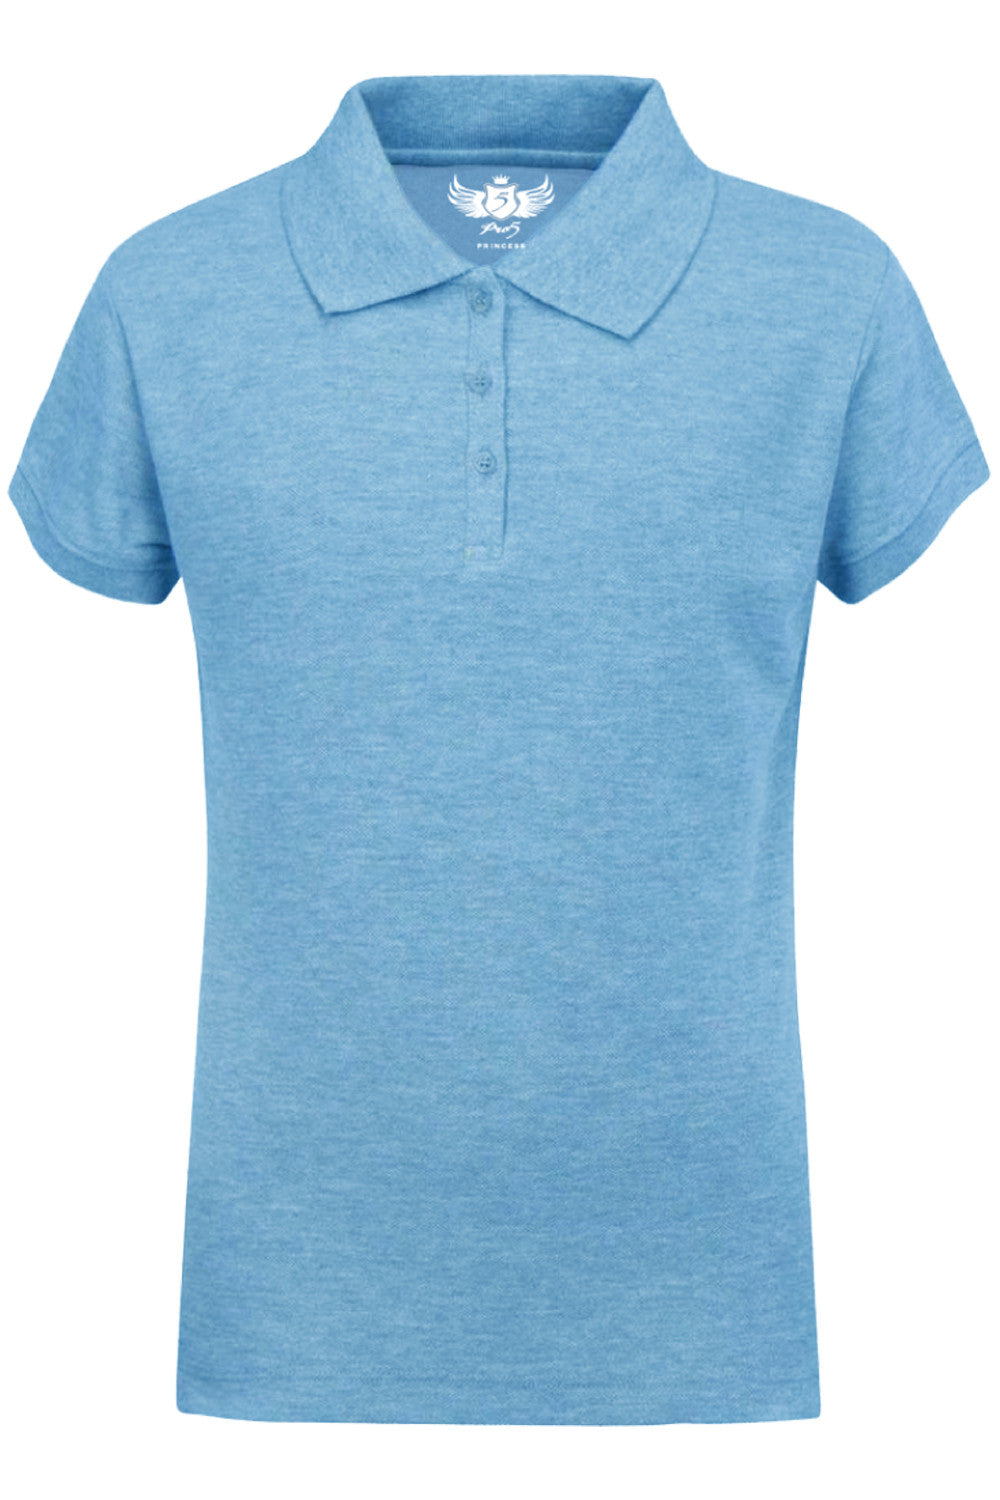 Girls Polo Top Kids School Uniform Sky Blue